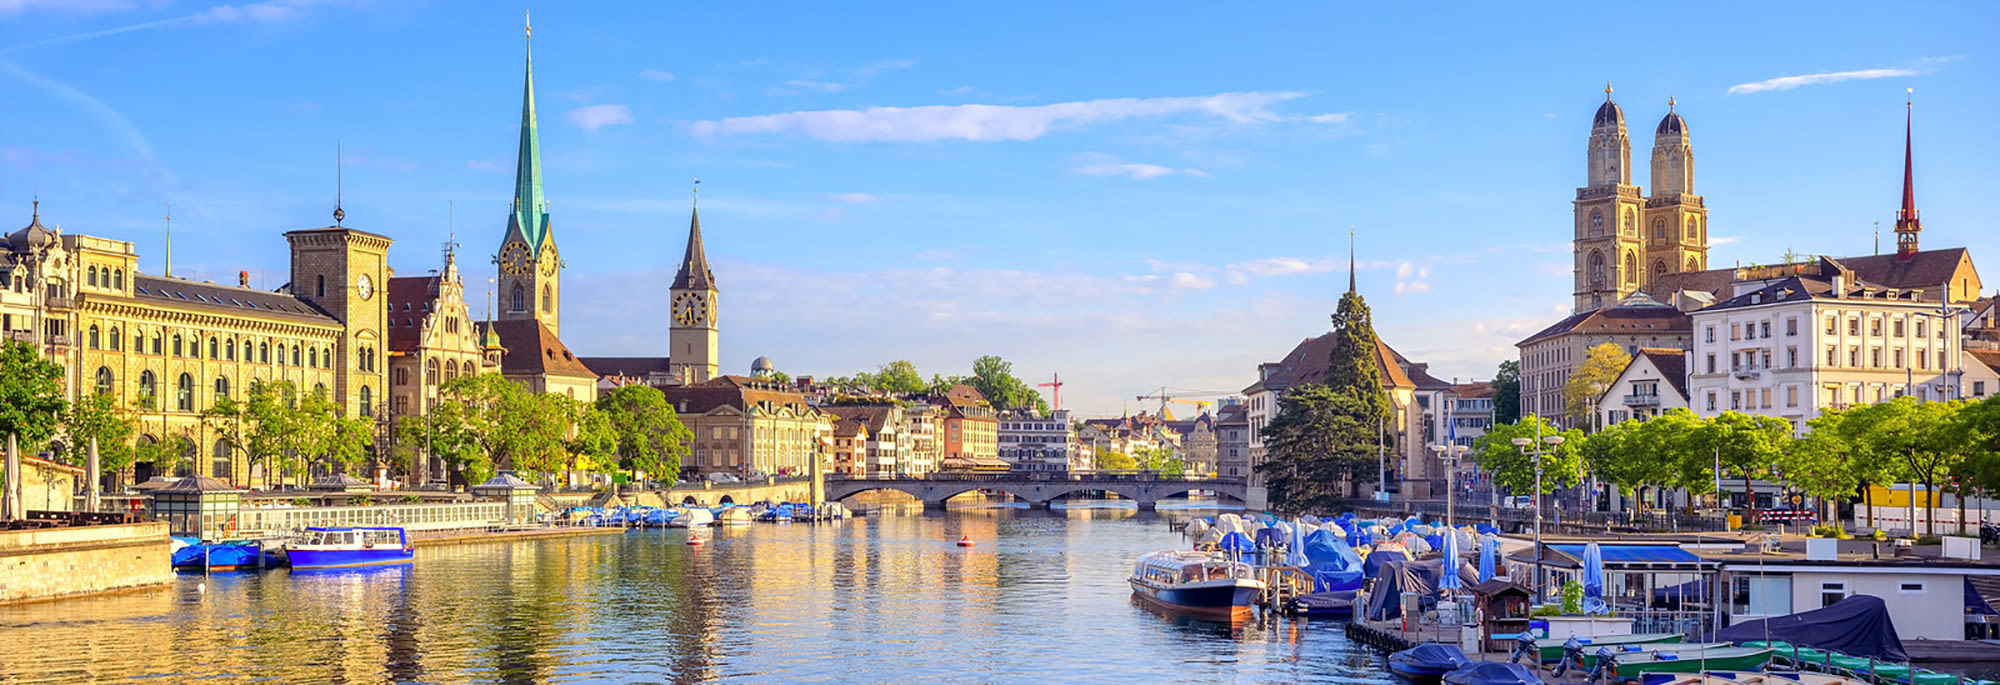 the city of zurich during the day